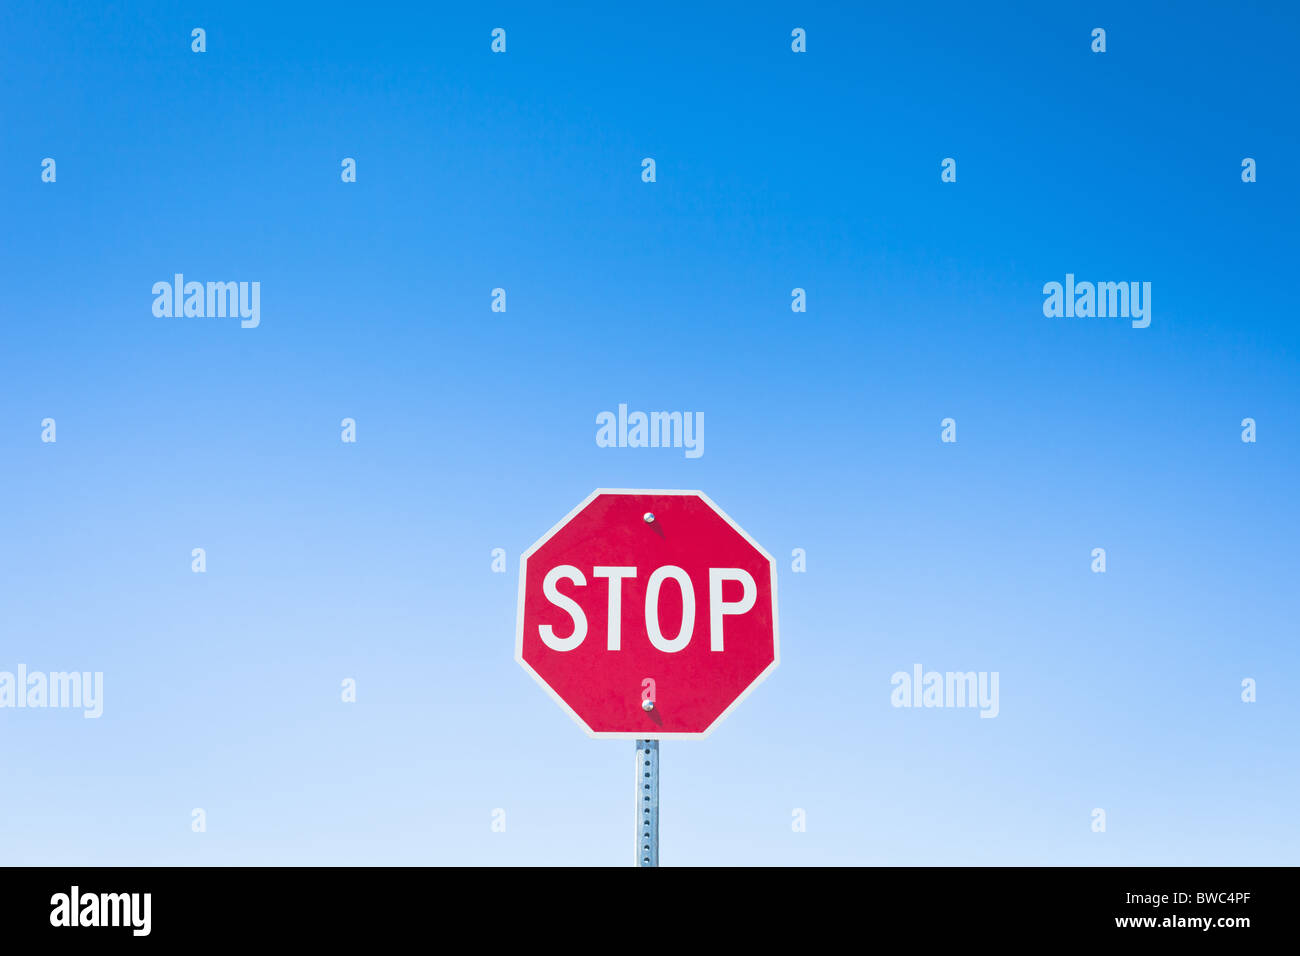 Stop sign against blue sky - Stock Image